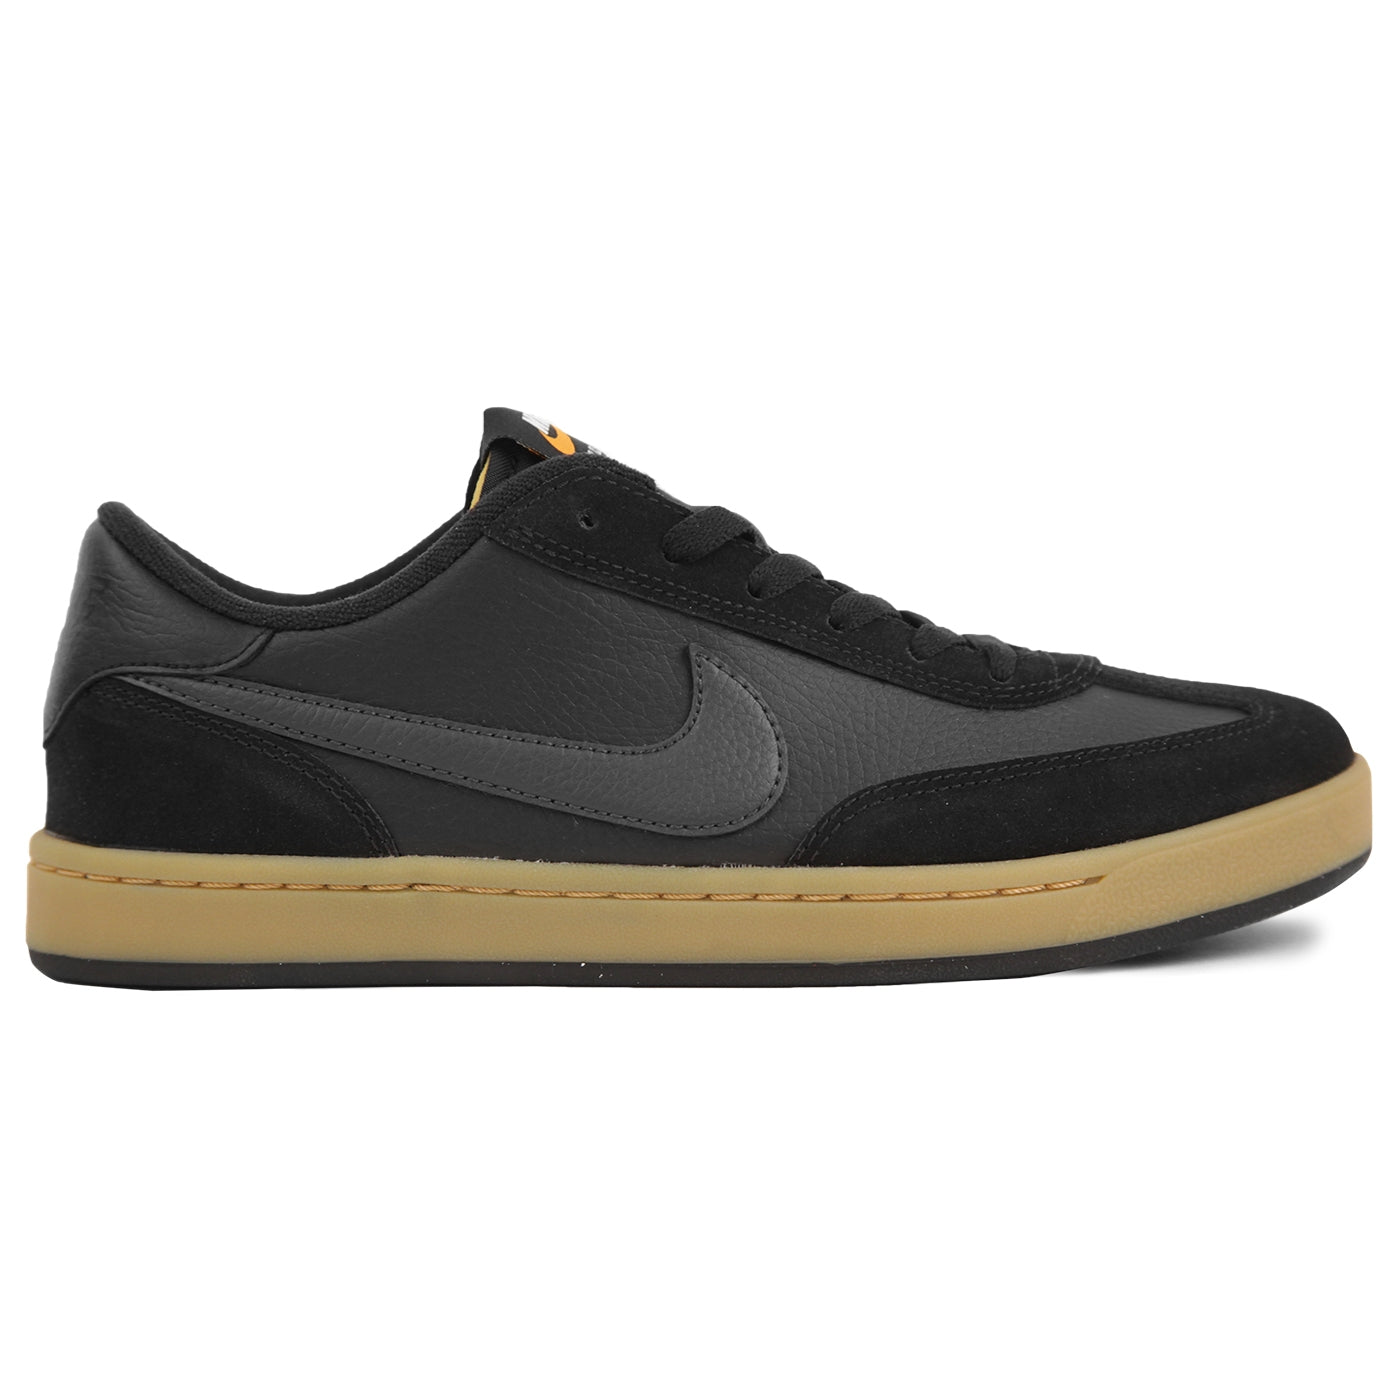 b28e0d0315e FC Classic Shoes in Black   Anthracite - Black by Nike SB